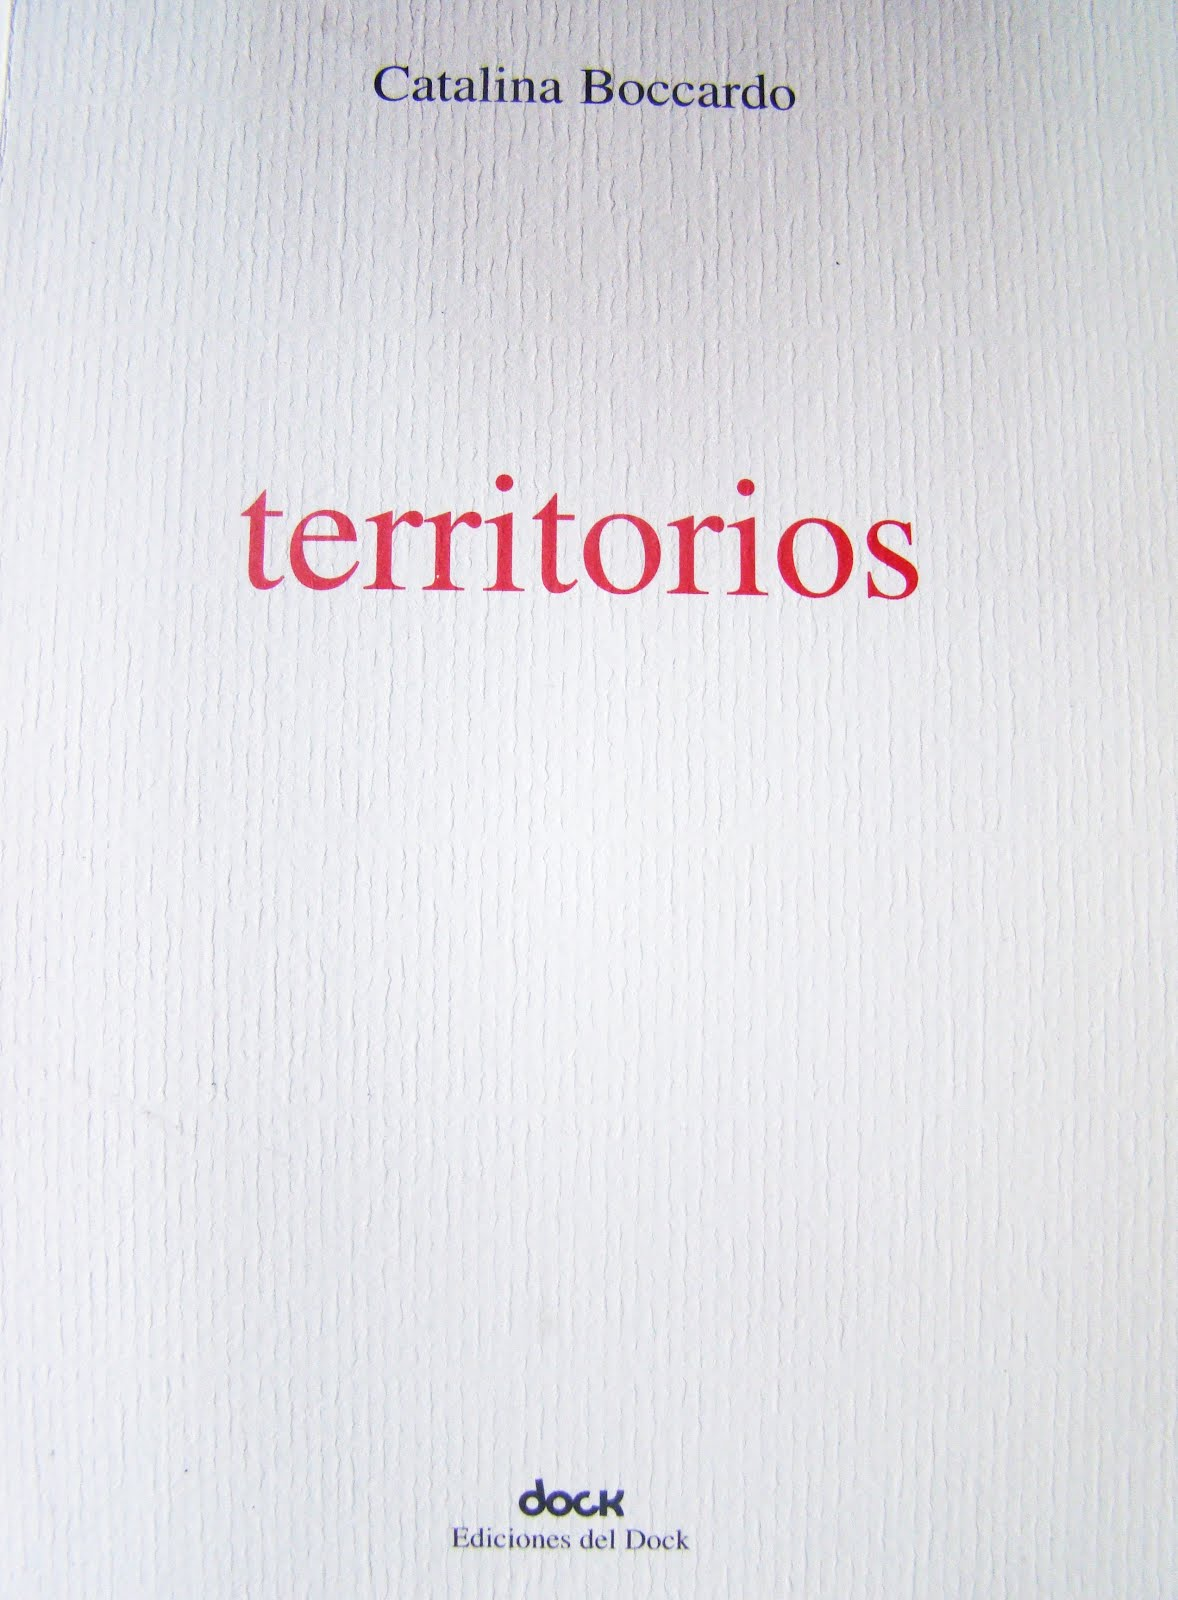 territorios (ediciones del dock, 2012)